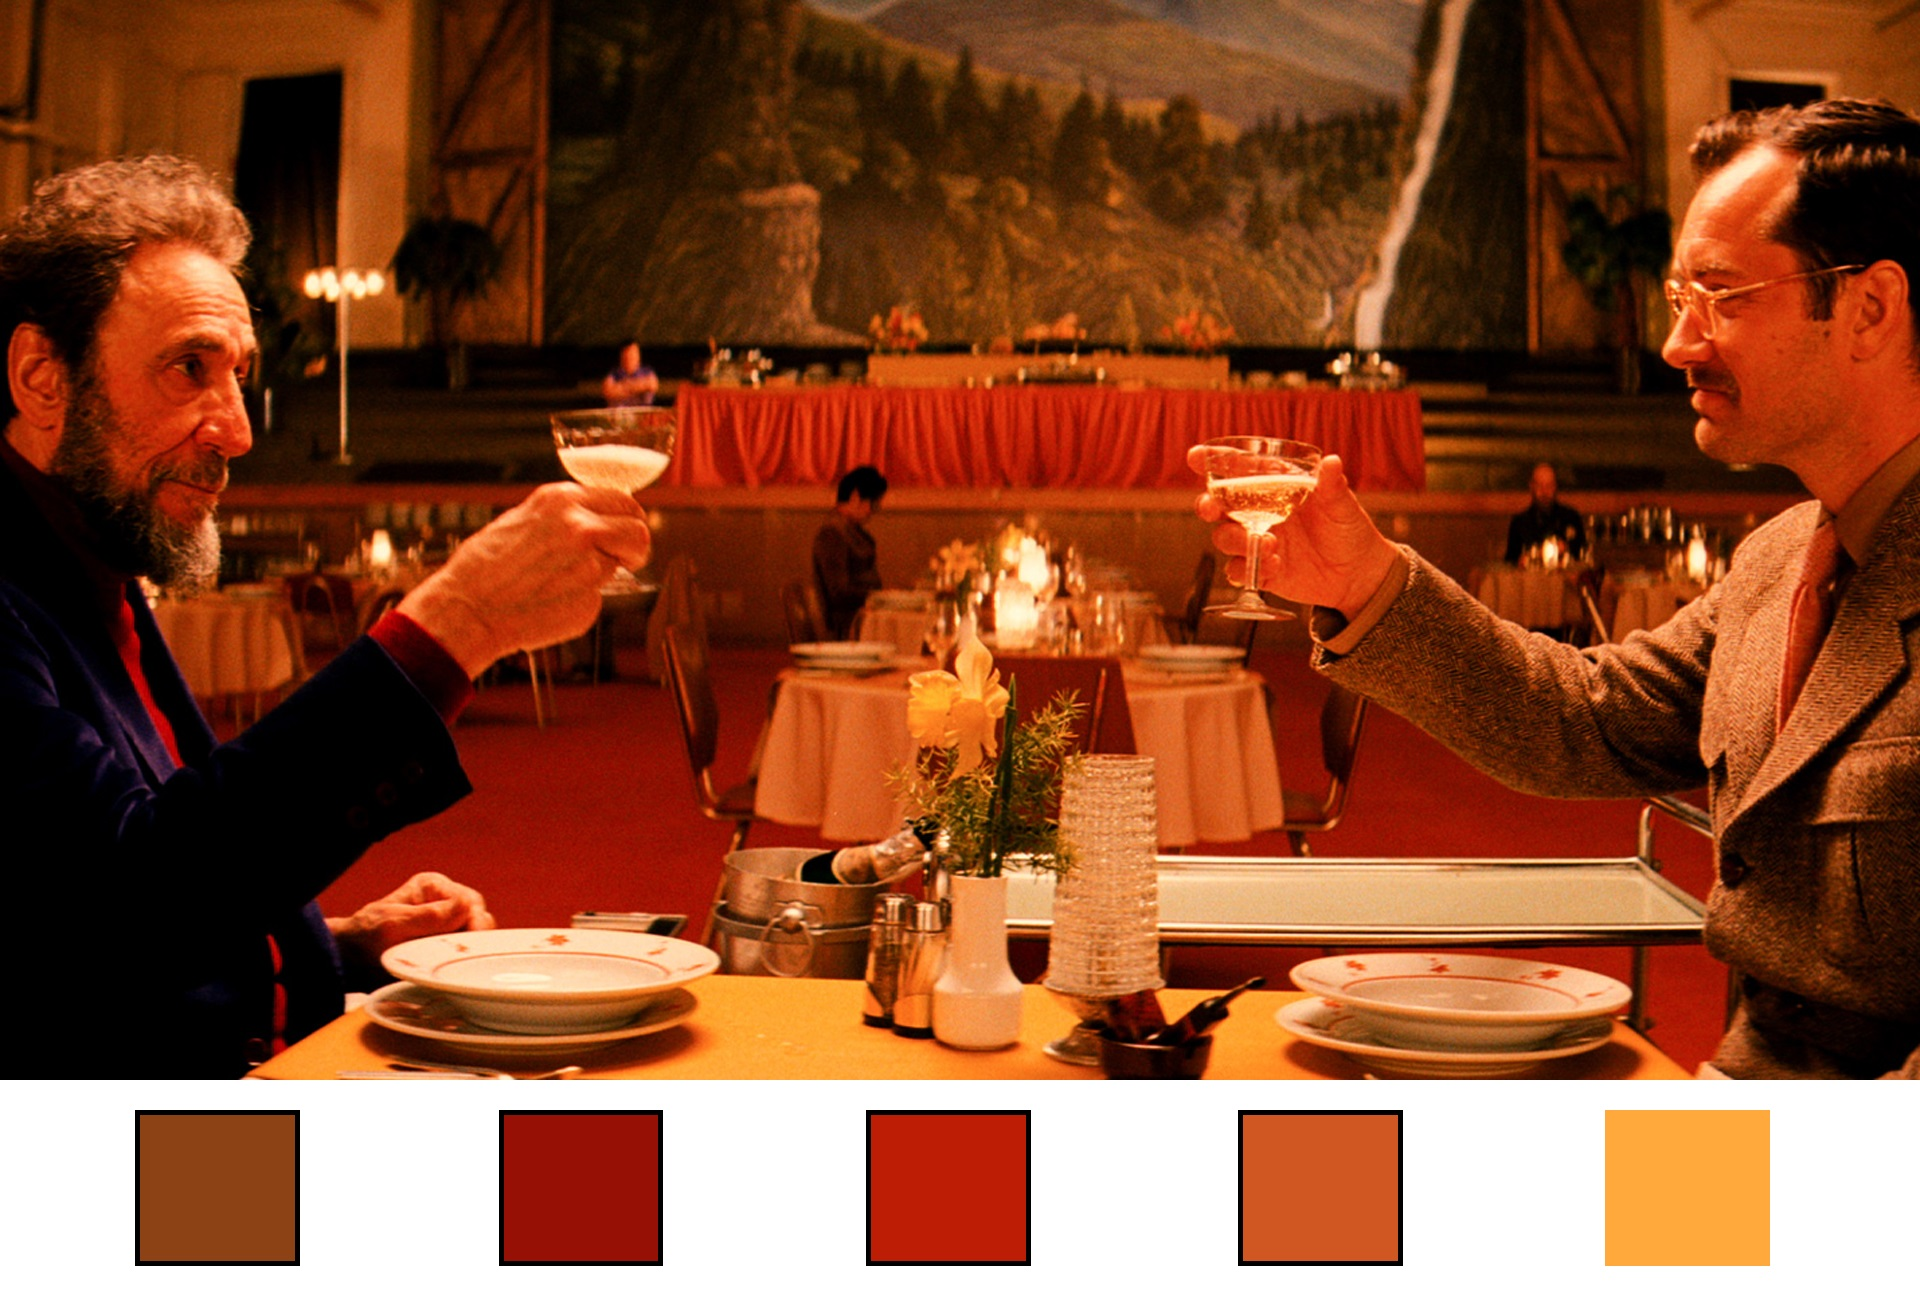 wes anderson grand budapest hotel ralph fiennes jude law cinema